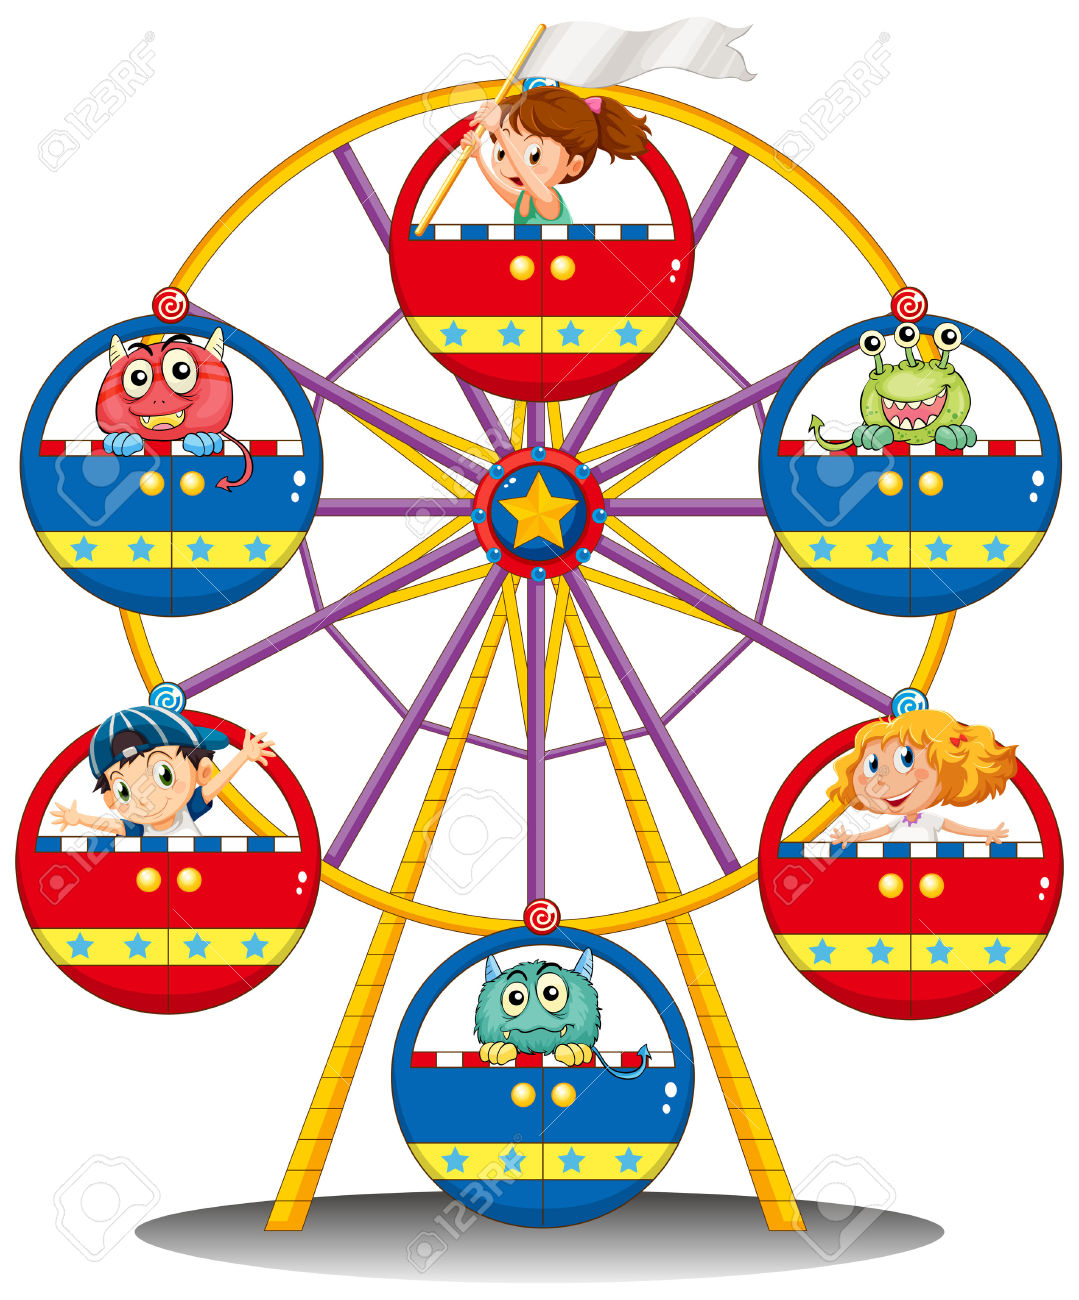 Carneval clipart carnival ride Clip Collection carnival  Zipper